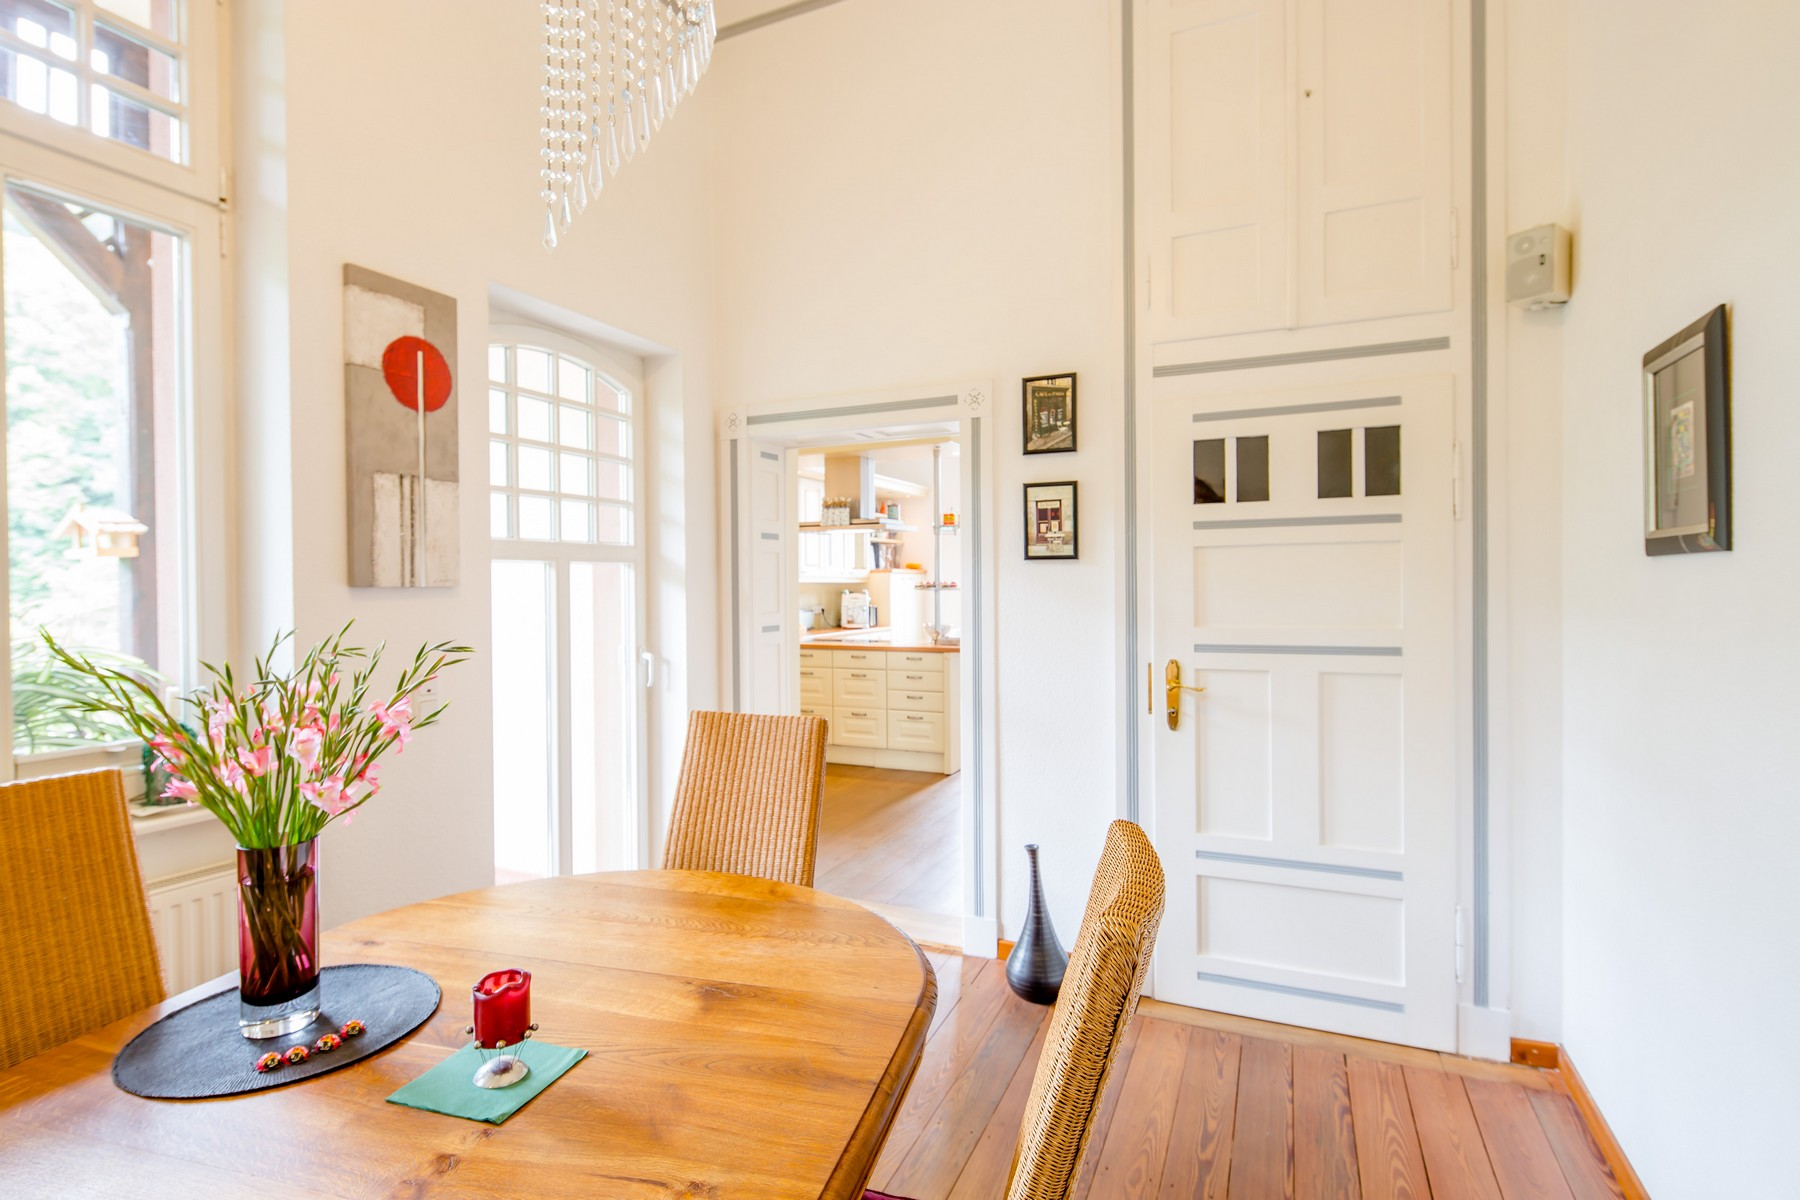 sales property at Schlangenbad: 1. floor unit in stately old building at the Park